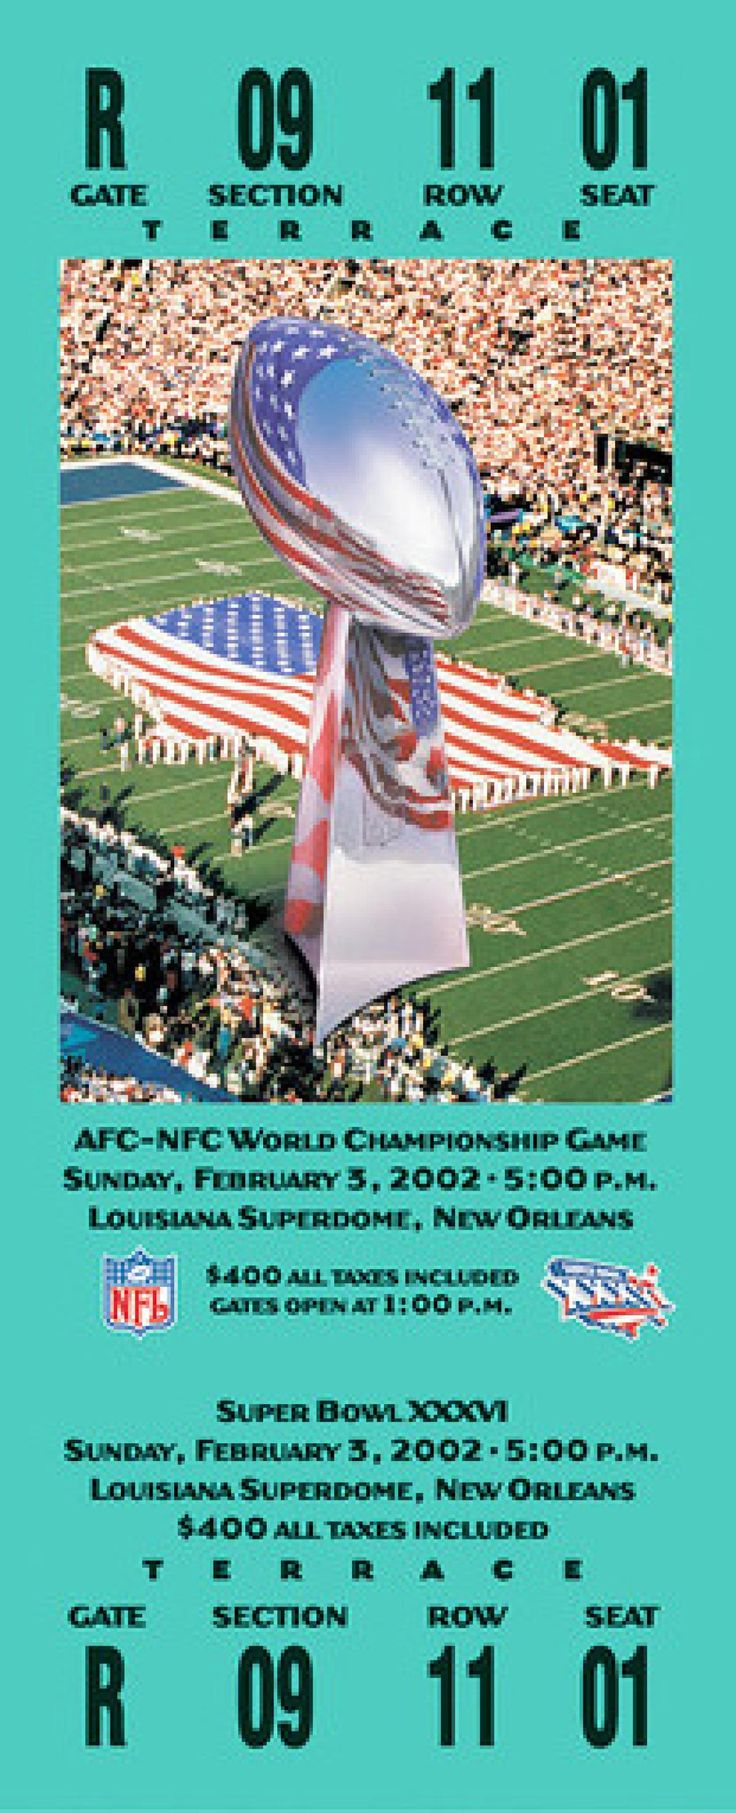 Played on February 3, 2002 at the Louisiana Superdome in New Orleans, Louisiana. The MVP of the game was Patriots QB Tom Brady. The average ticket cost for the game was $400.00.